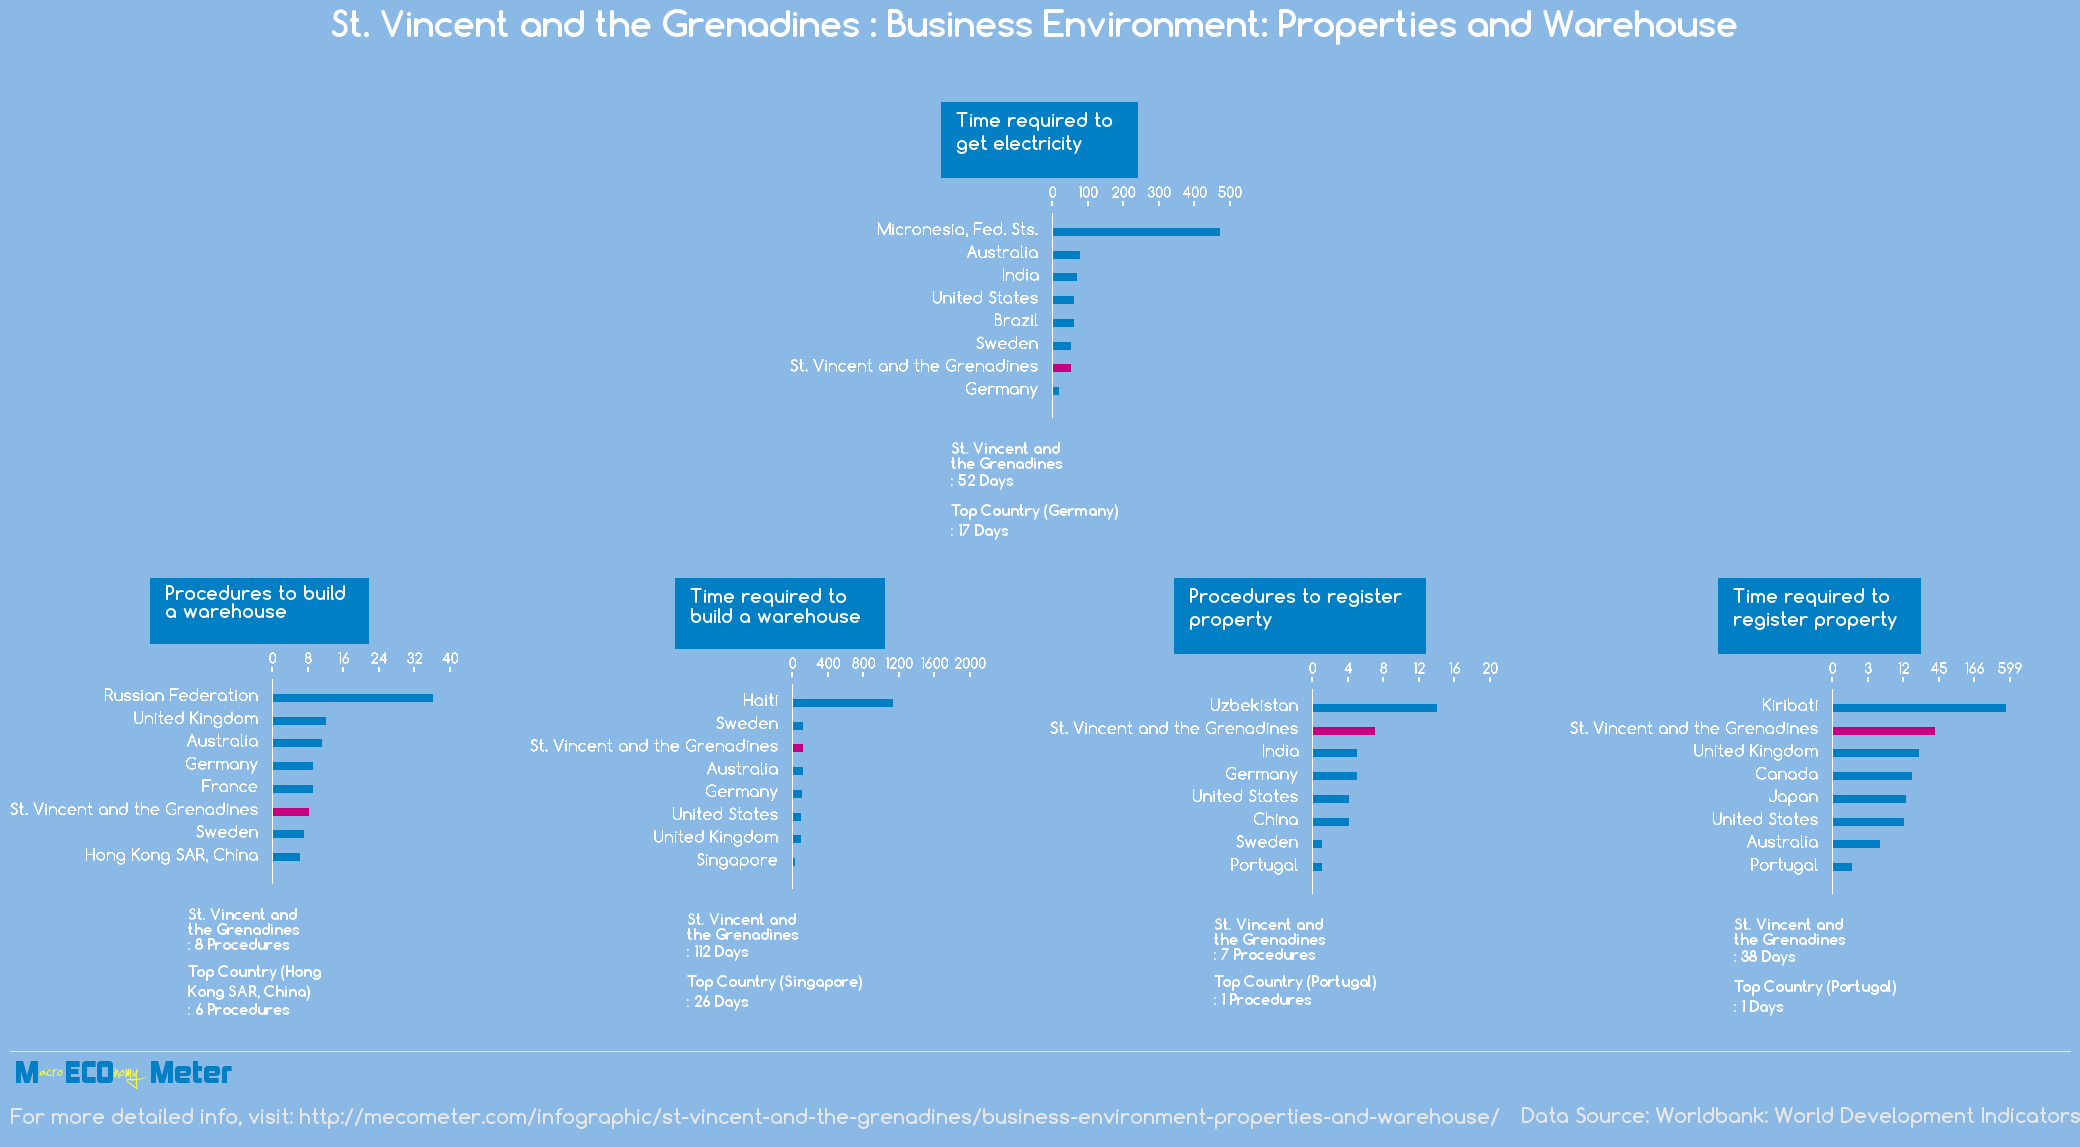 St. Vincent and the Grenadines : Business Environment: Properties and Warehouse